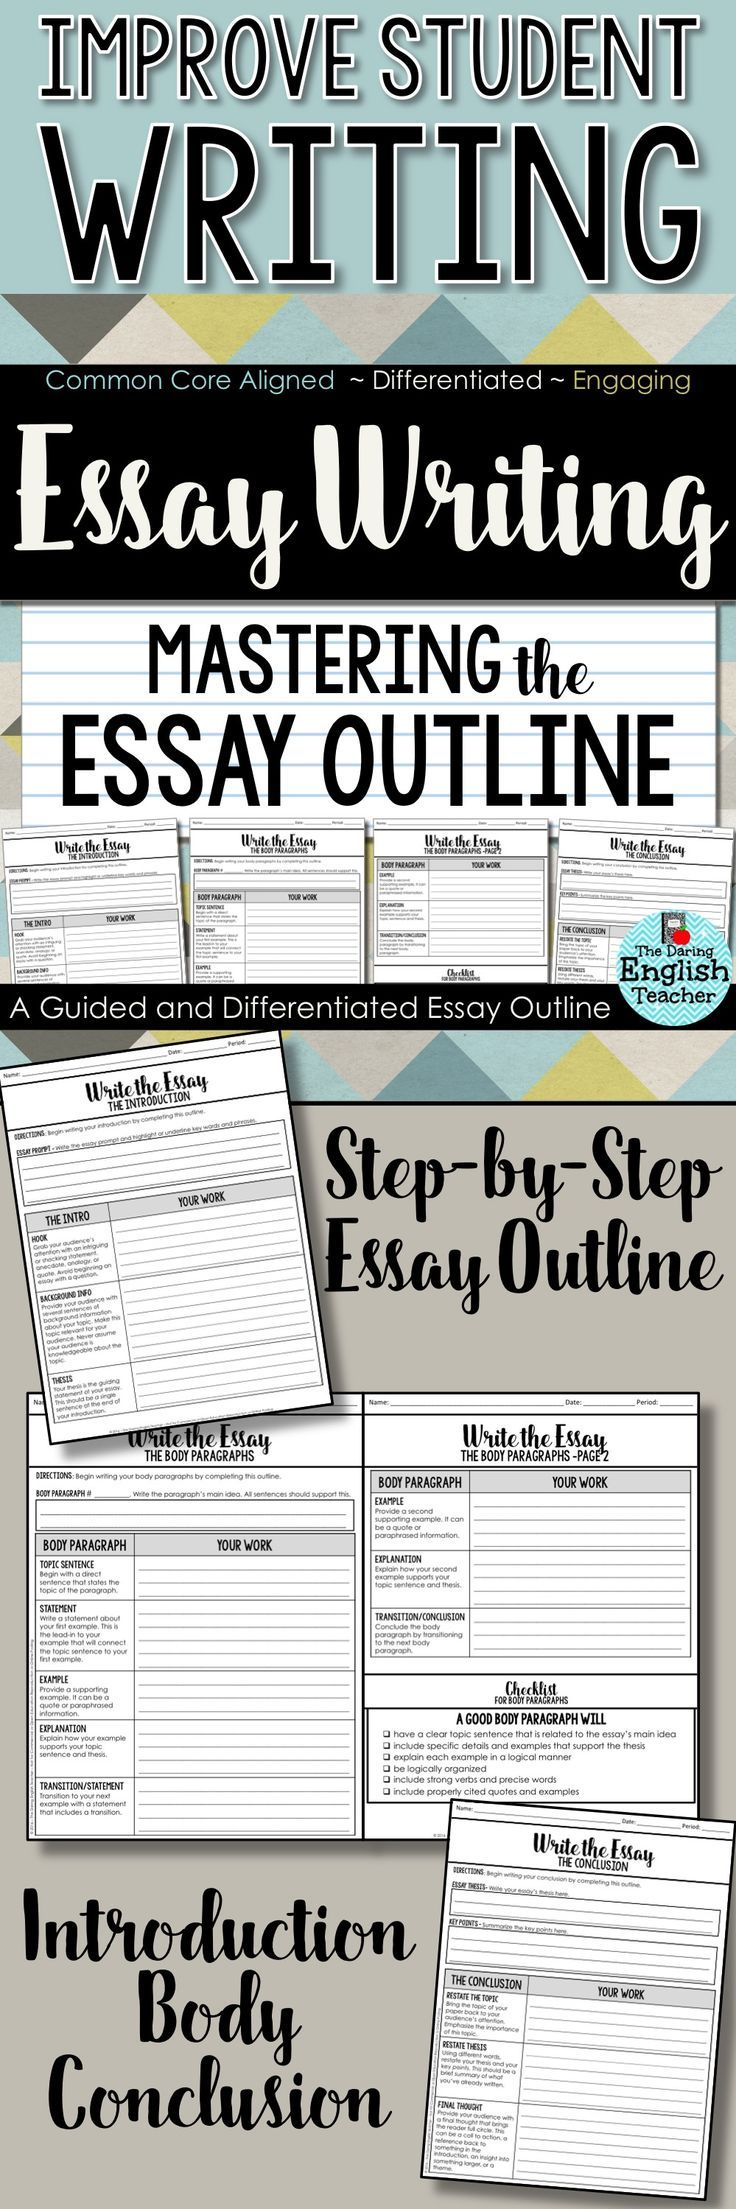 best ideas about essay writing tips essay tips essay writing mastering the essay outline guided instructions